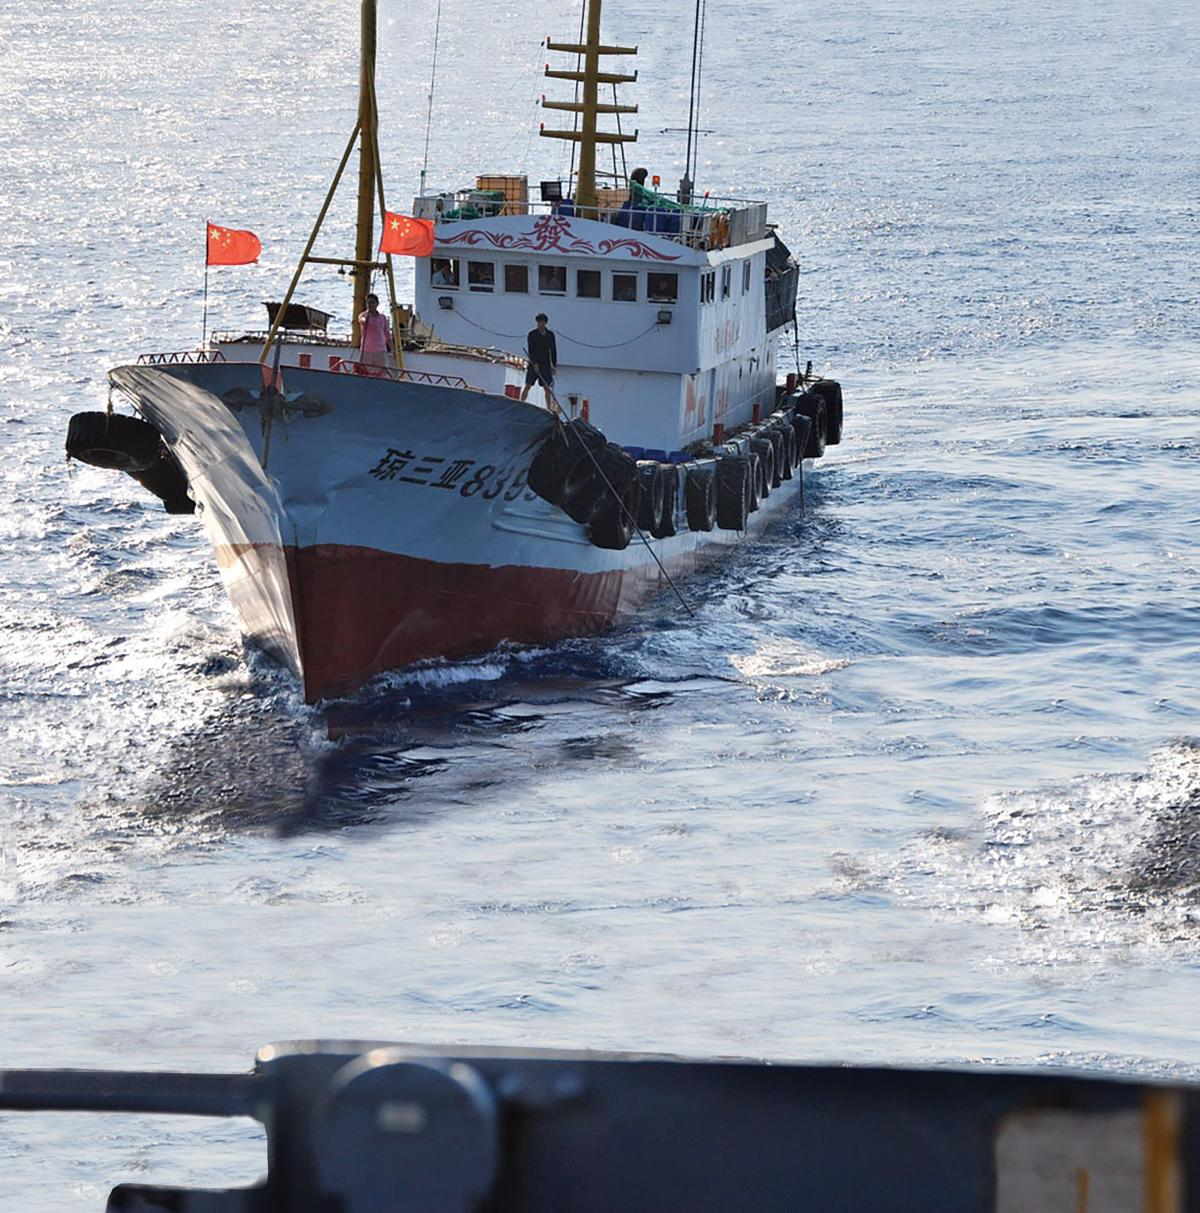 A crewmember on a Chinese trawler uses a grapple hook in an apparent attempt to snag the towed acoustic array of the military Sealift Command ocean surveillance ship USNS Impeccable (T-AGOS-23)